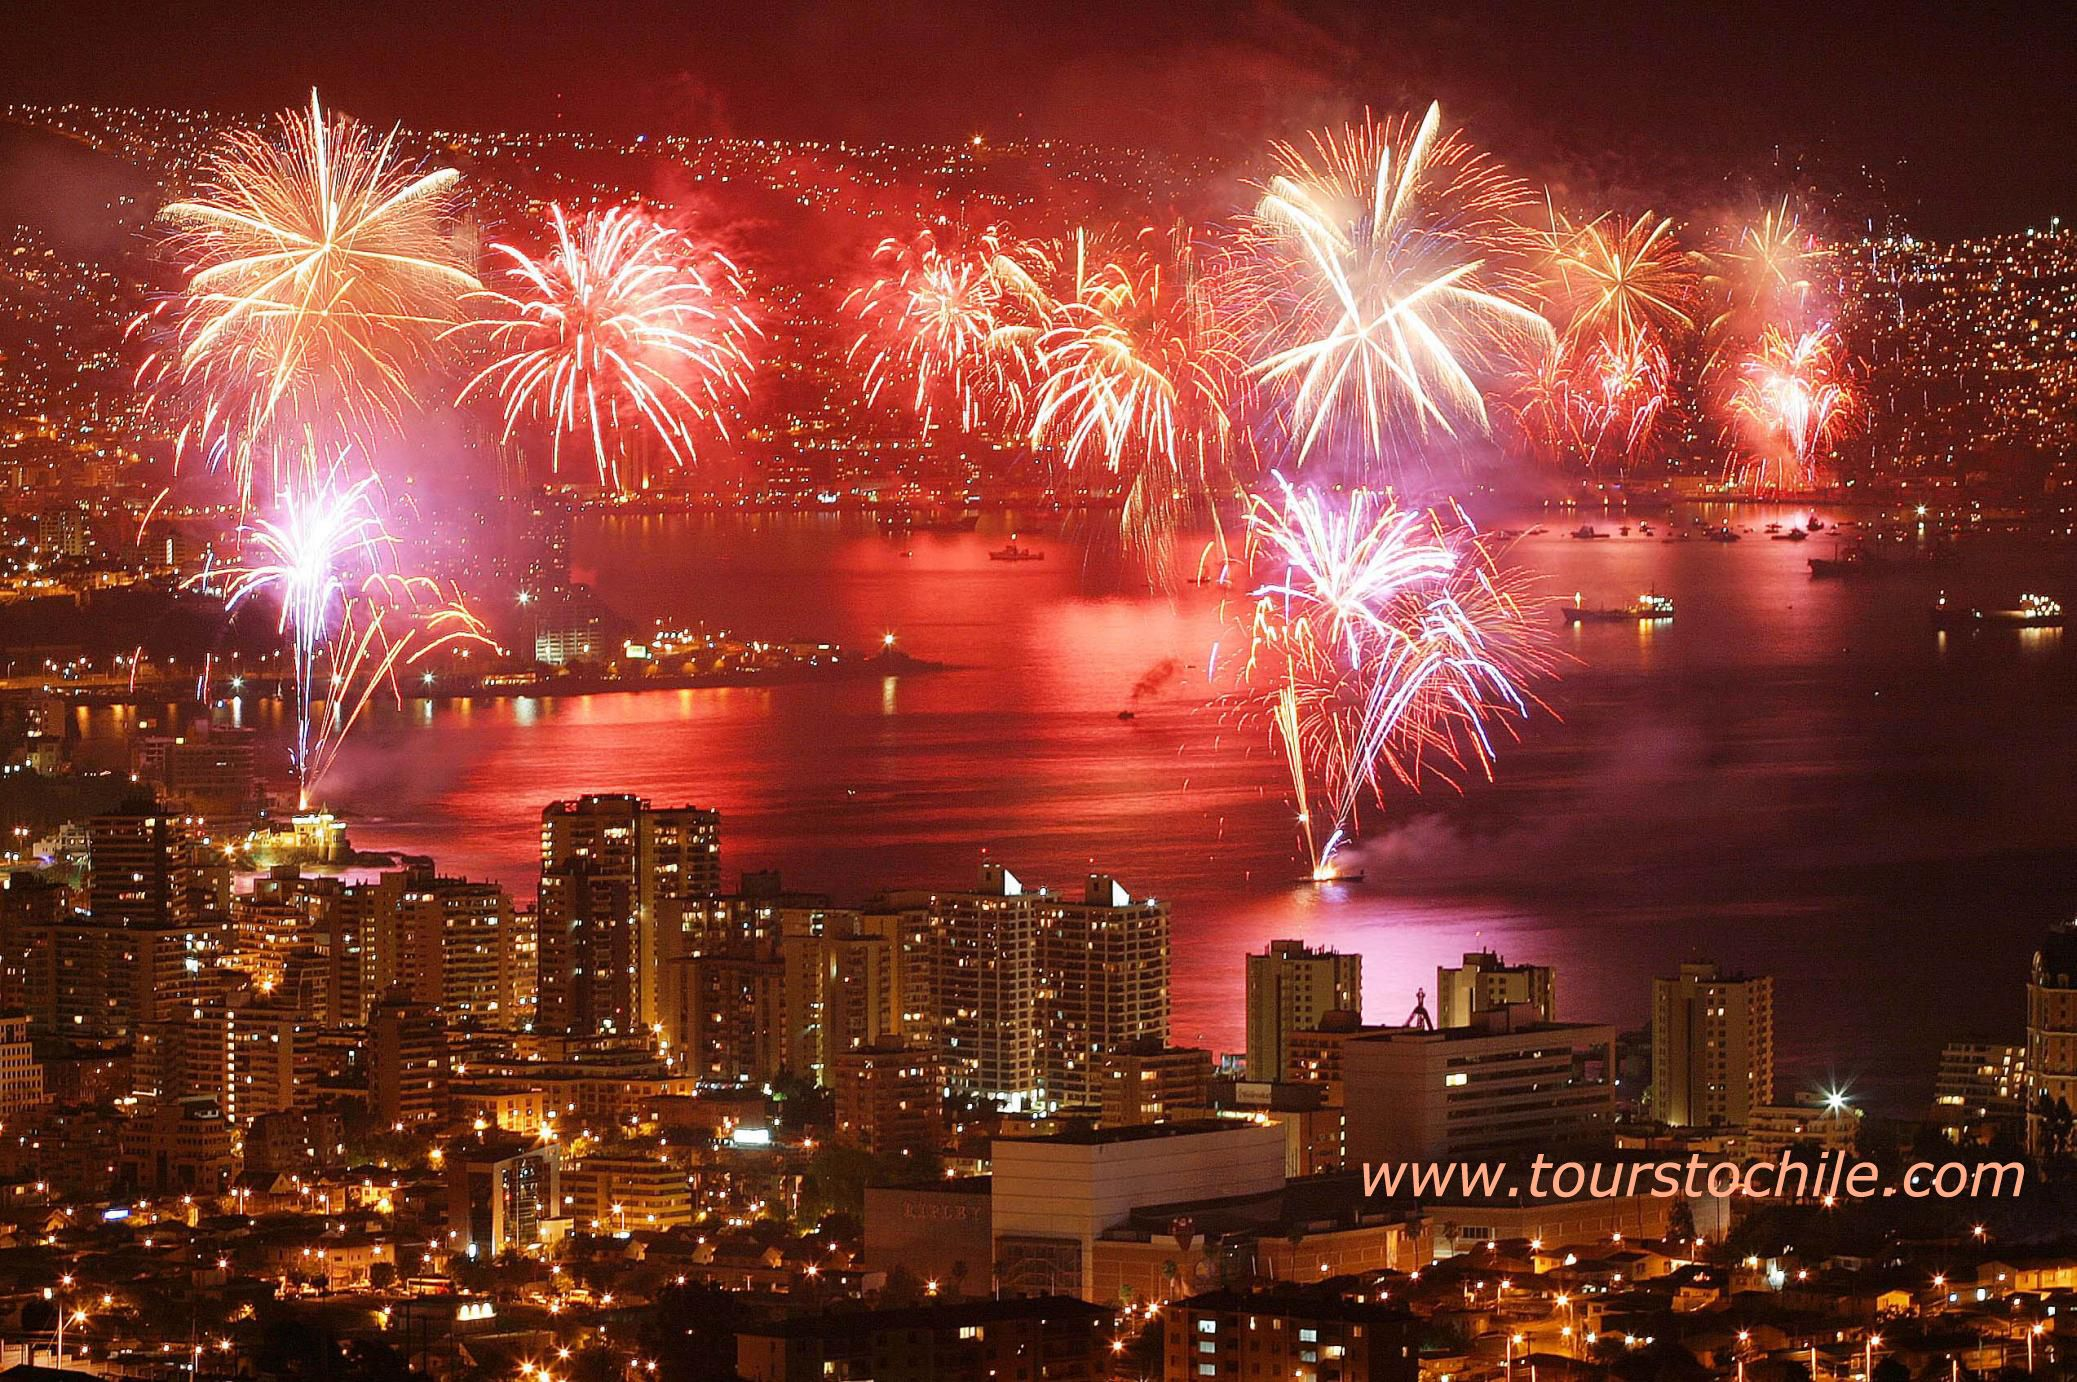 The Traditional New Year S Celebration Fireworks In Valparaiso Chile New Year S Eve Around The World Valparaiso Chile Chile